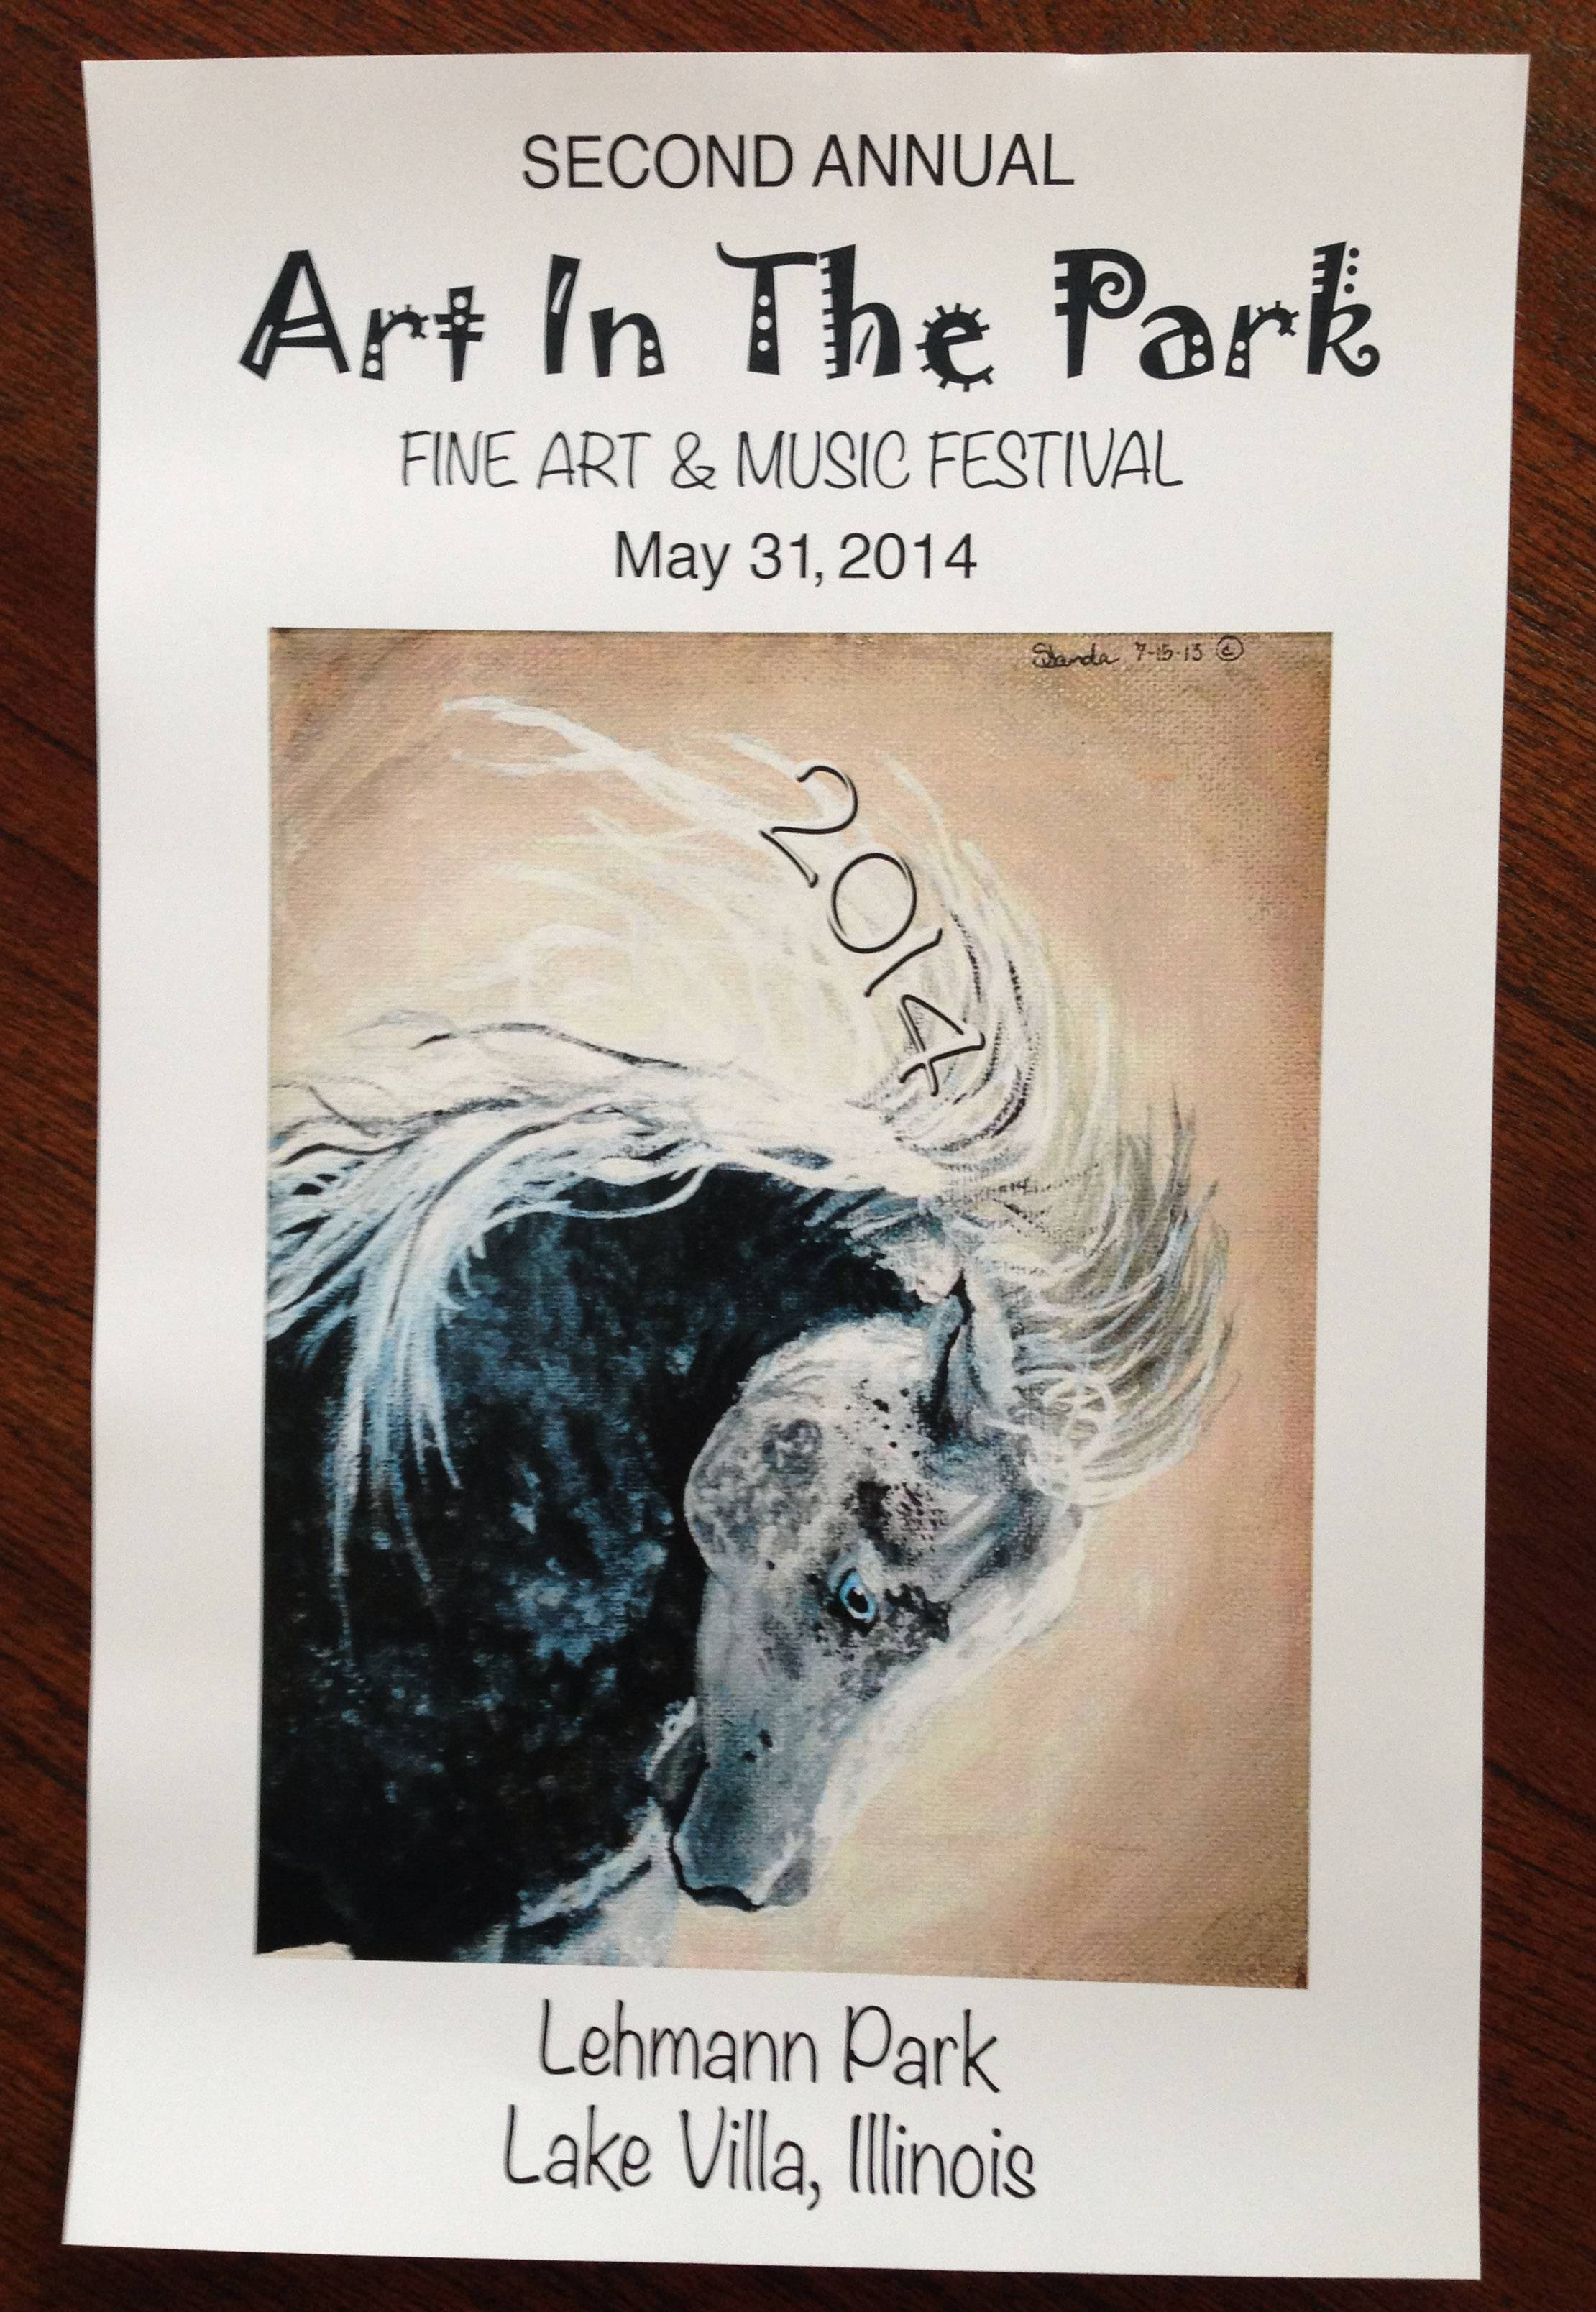 Sydney Janda's sketch has been selected as the poster art for the Art in the Park festival in Lake Villa on May 31.